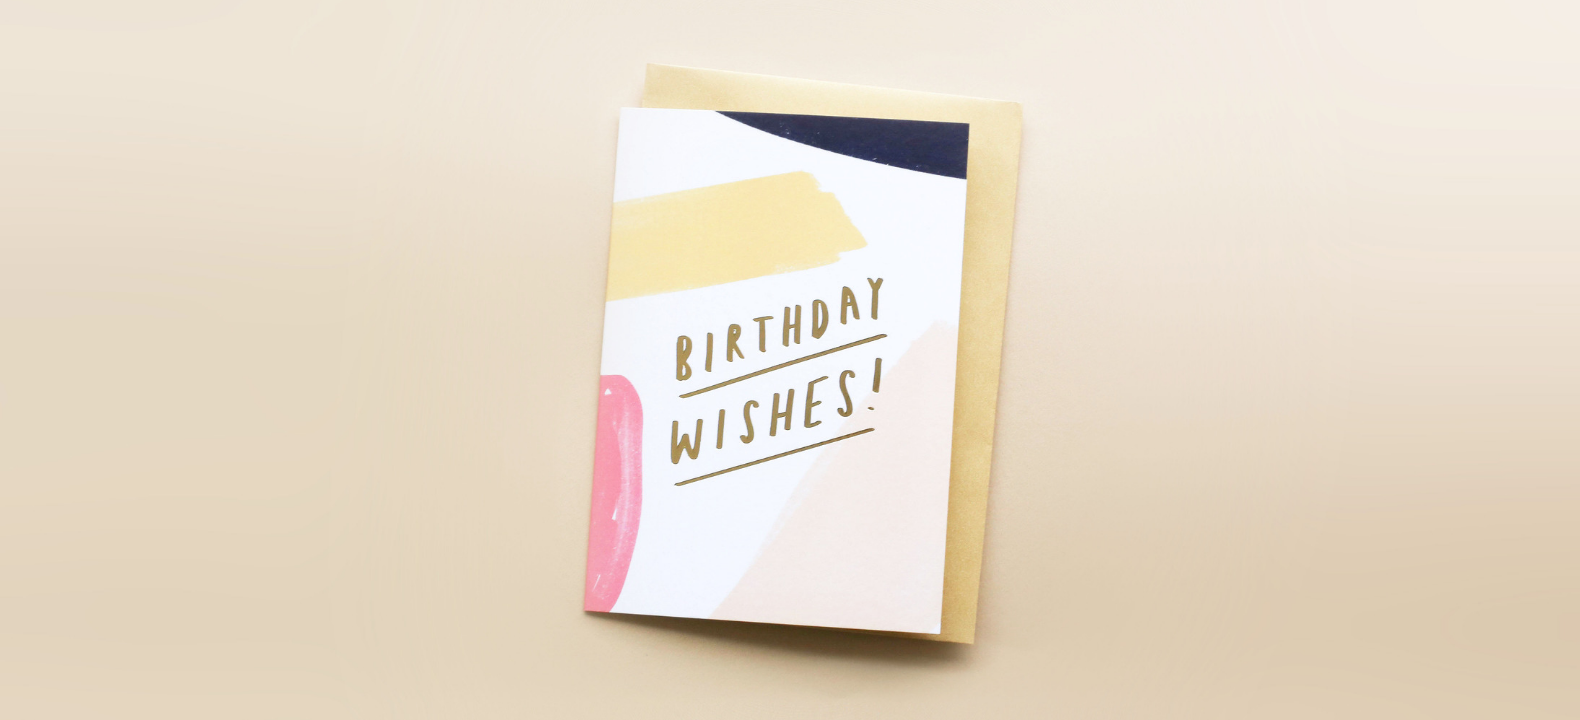 The New Brushworks Greeting Card Range